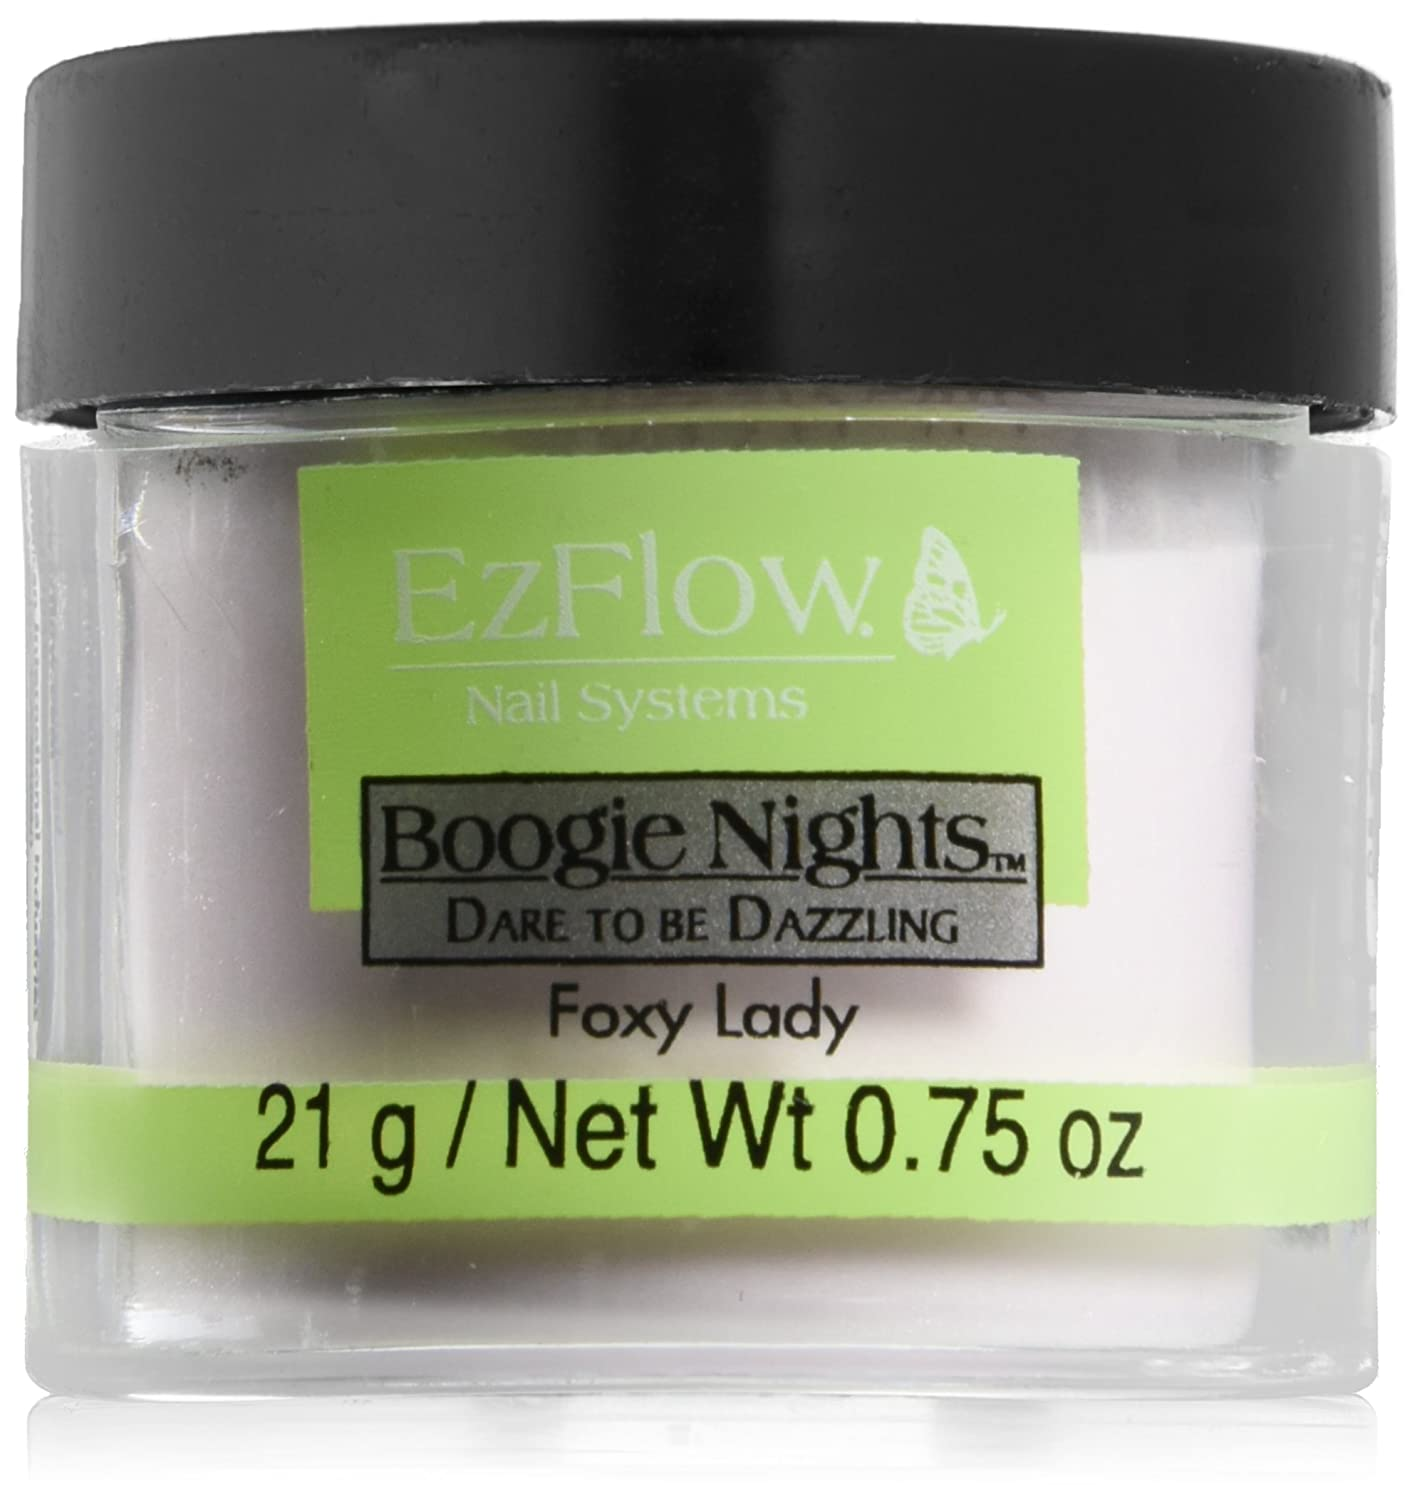 EZ Flow Dare To Be Dazzling Glitter False Nails, Foxy Lady, 0.75 Ounce